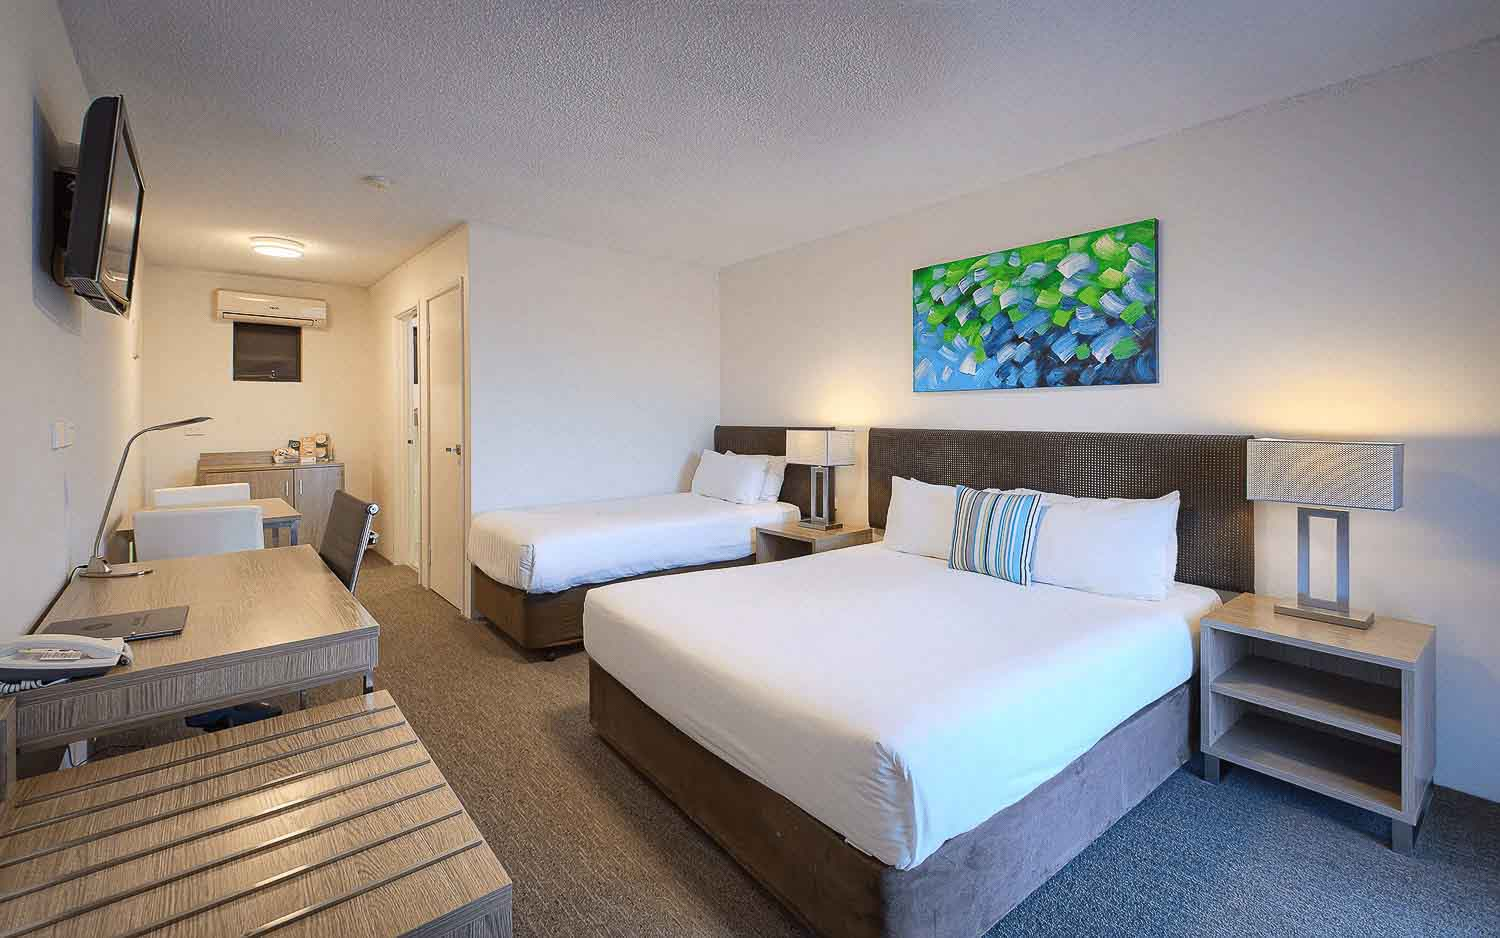 Book Early Save 15% - Book at least 30 days in advanceThis rate is non-refundableFor direct bookings onlySubject to availability